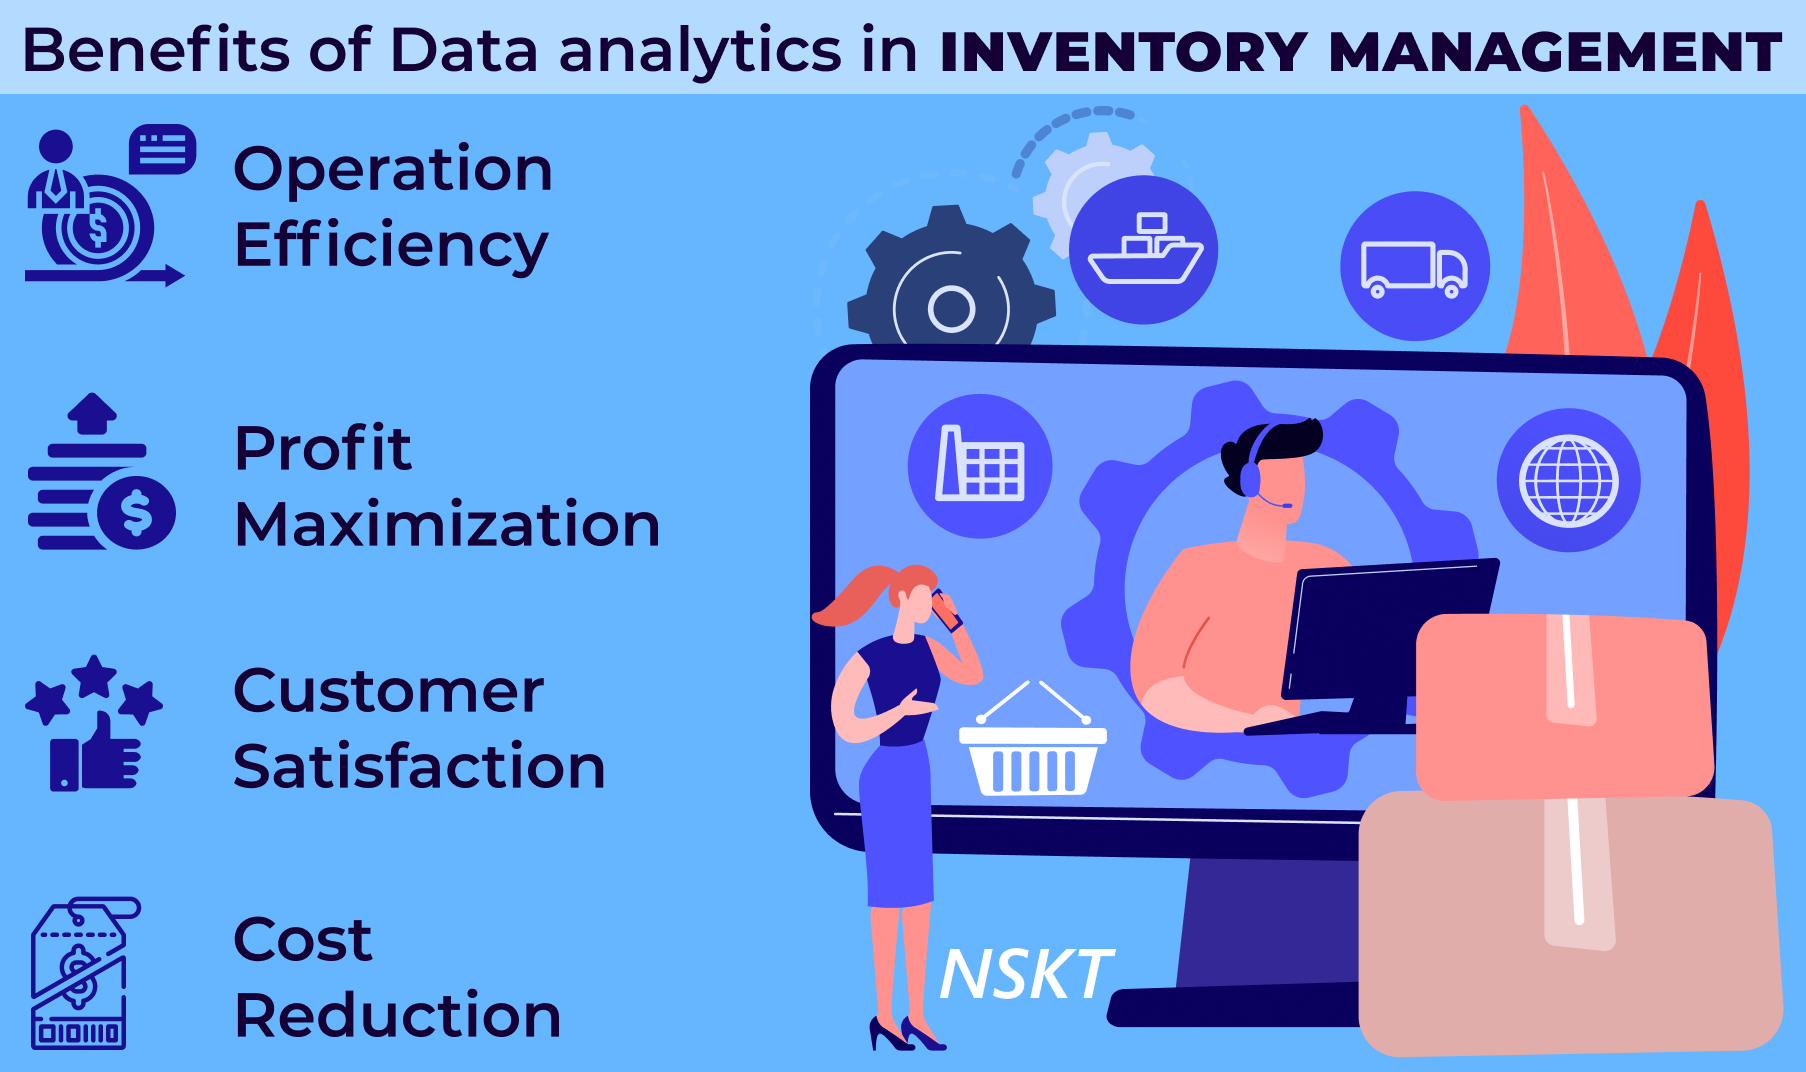 How data analytics can help in inventory management?